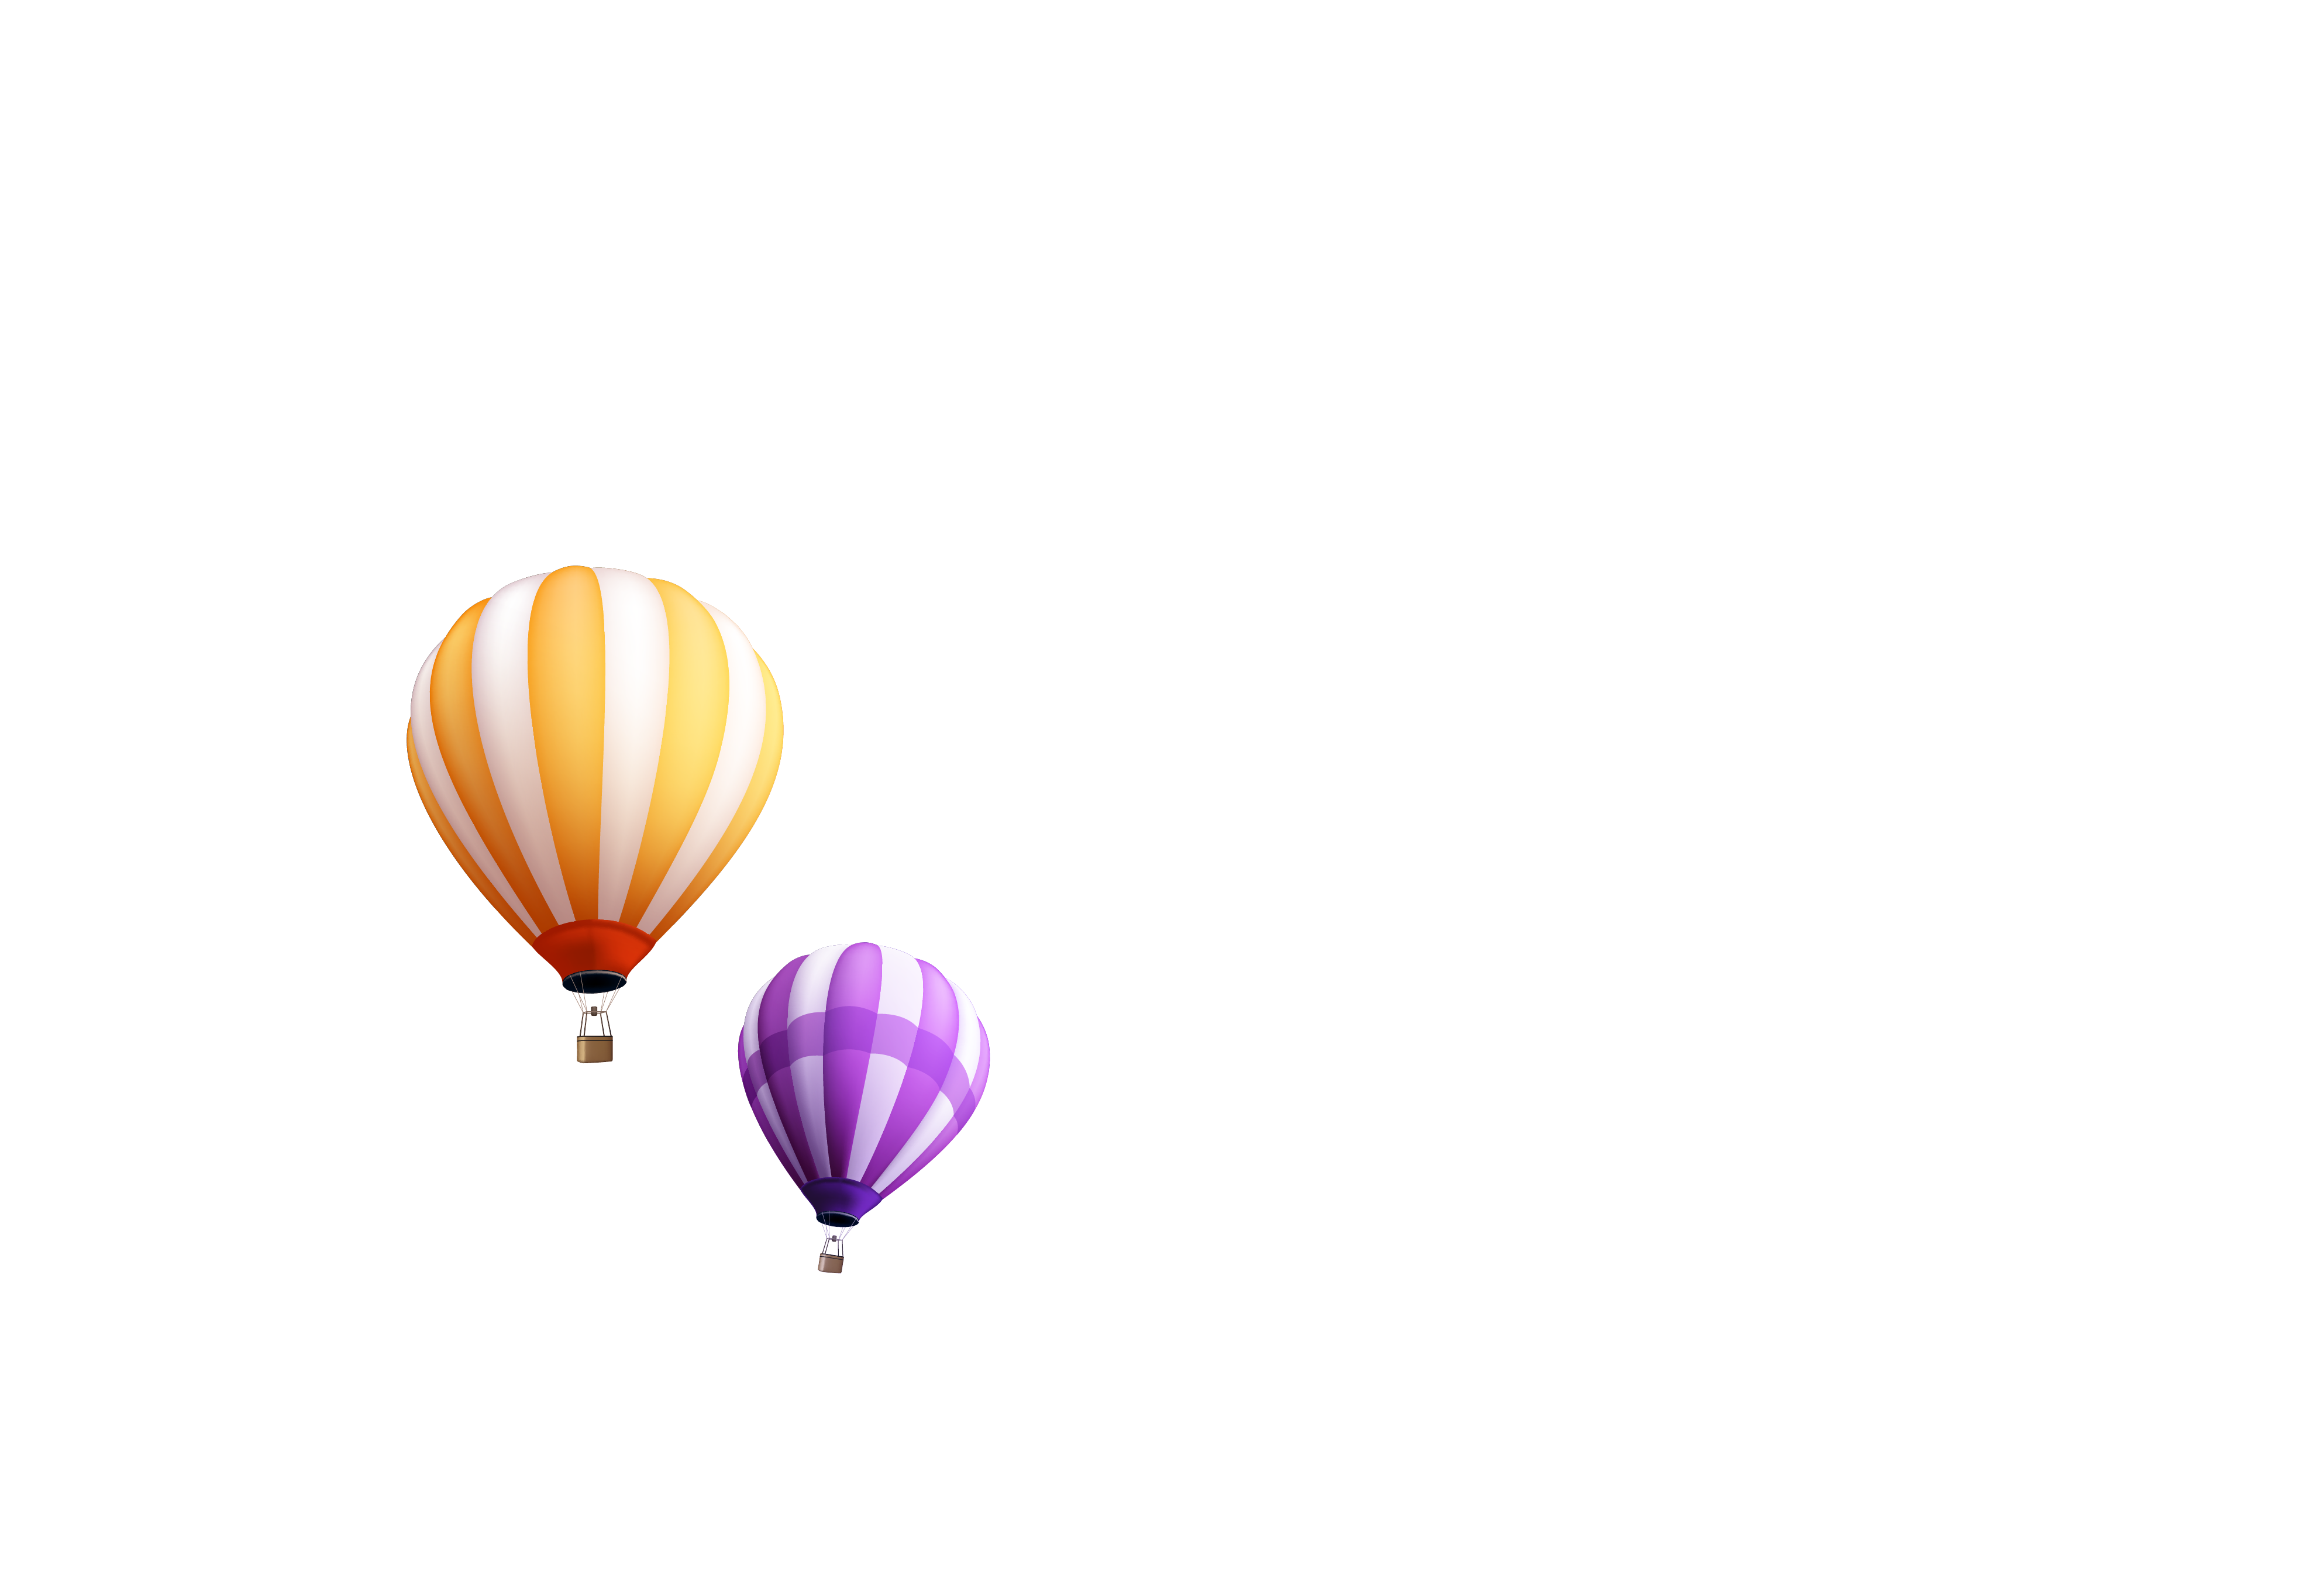 transparent library Vector color cloud. Hot air balloon aviation